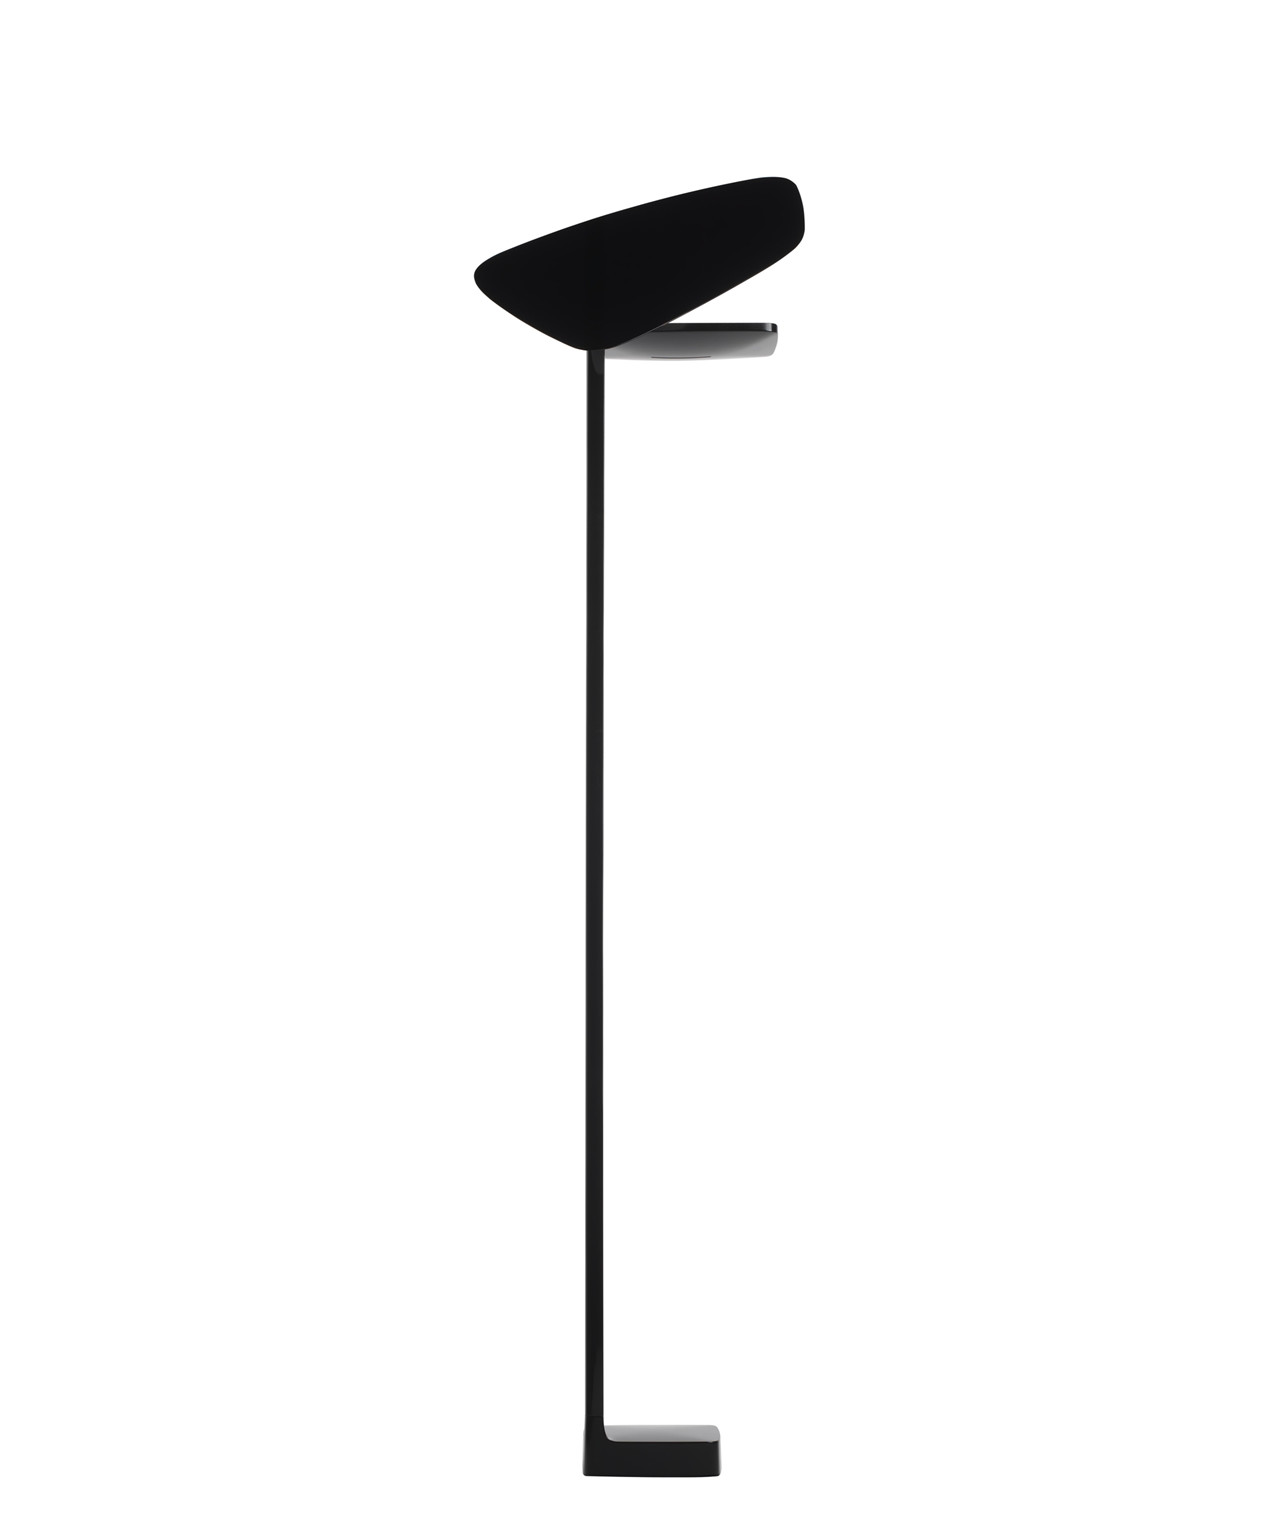 Image of   Lightwing Gulvlampe Sort - Foscarini